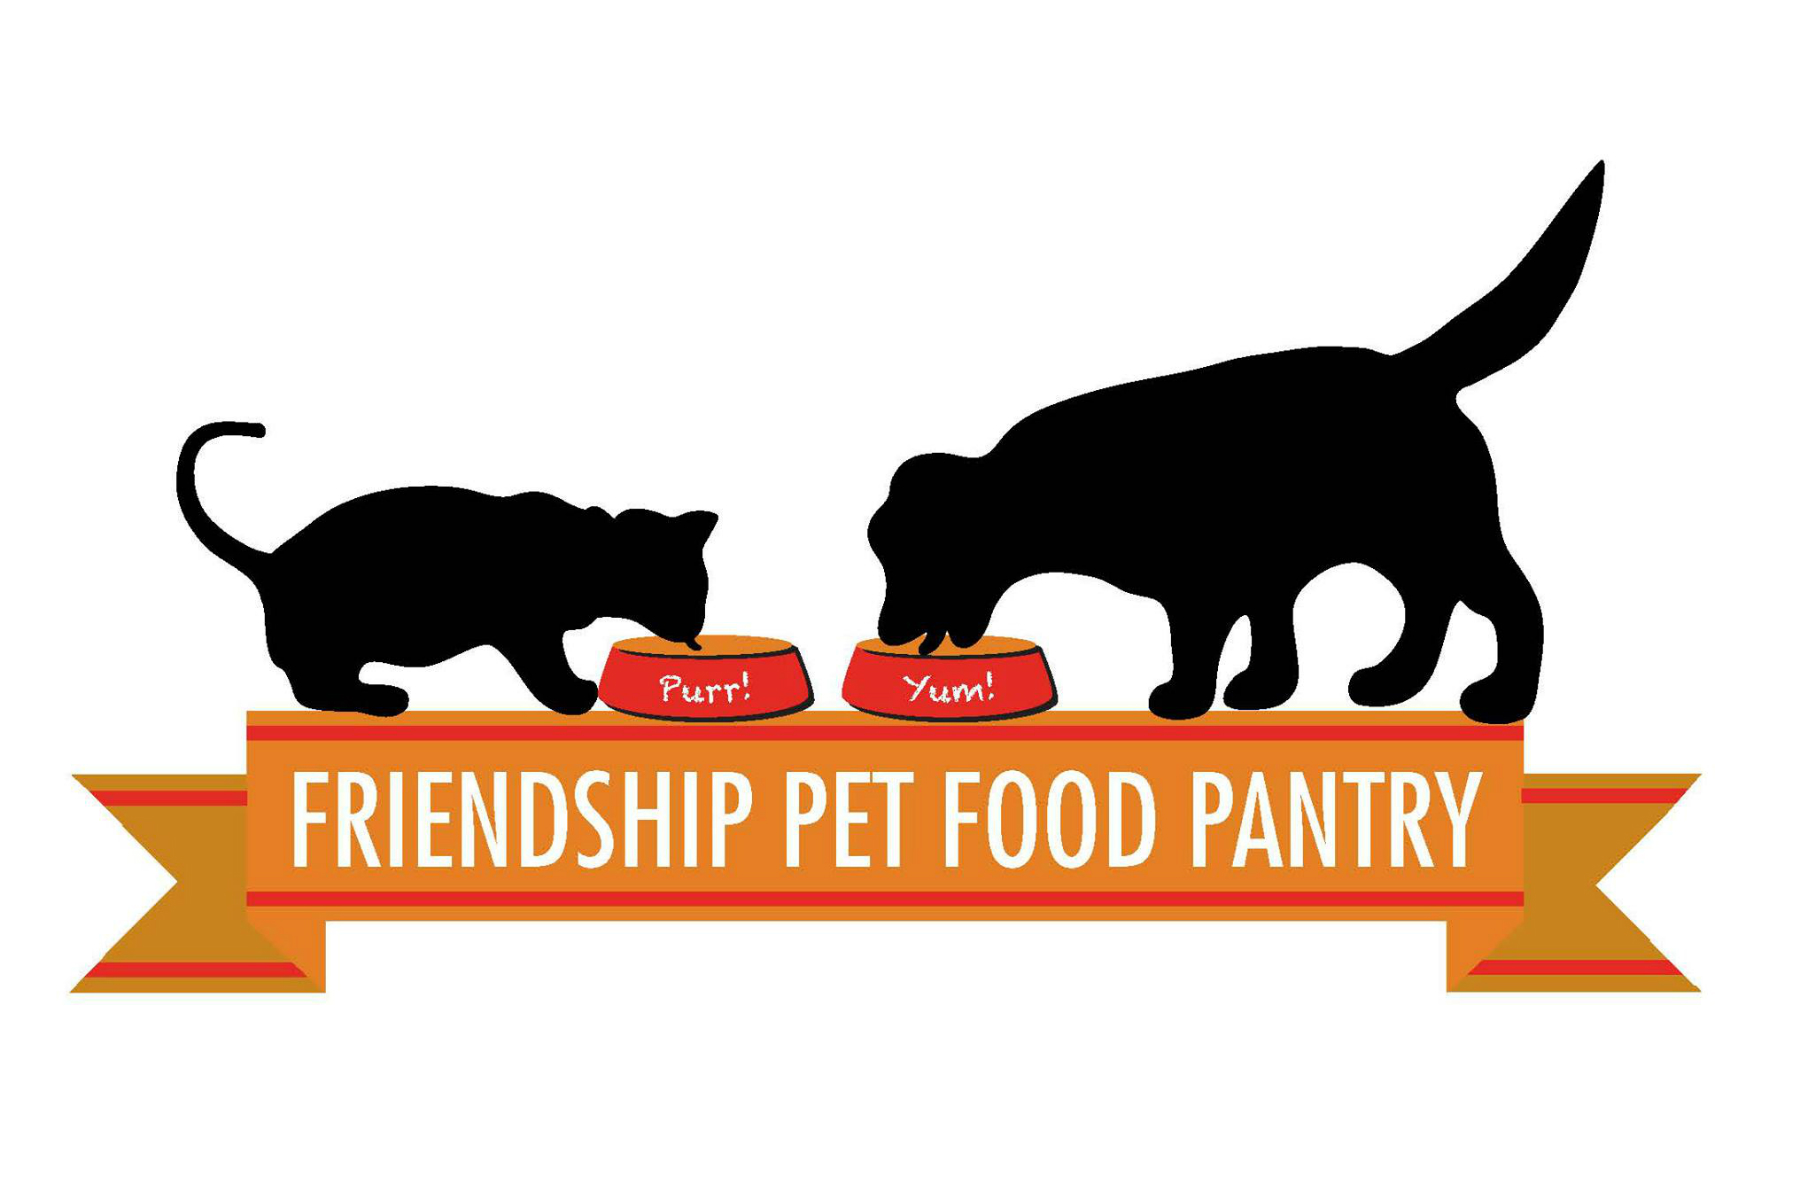 Friendship Pet Food Pantry Keeping Chicago Families Pets Together